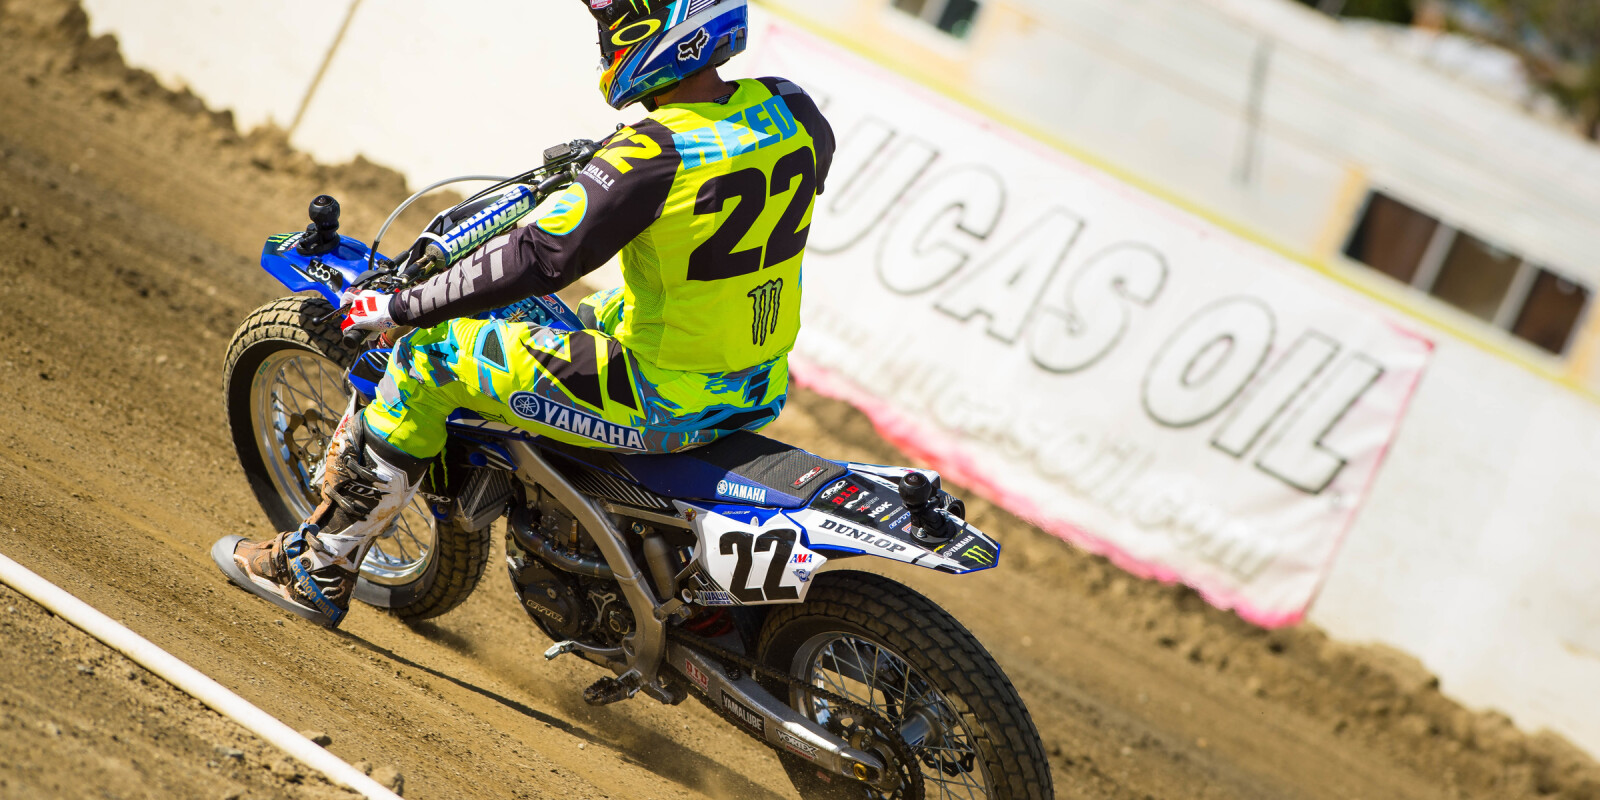 Chad Reed races flat track.